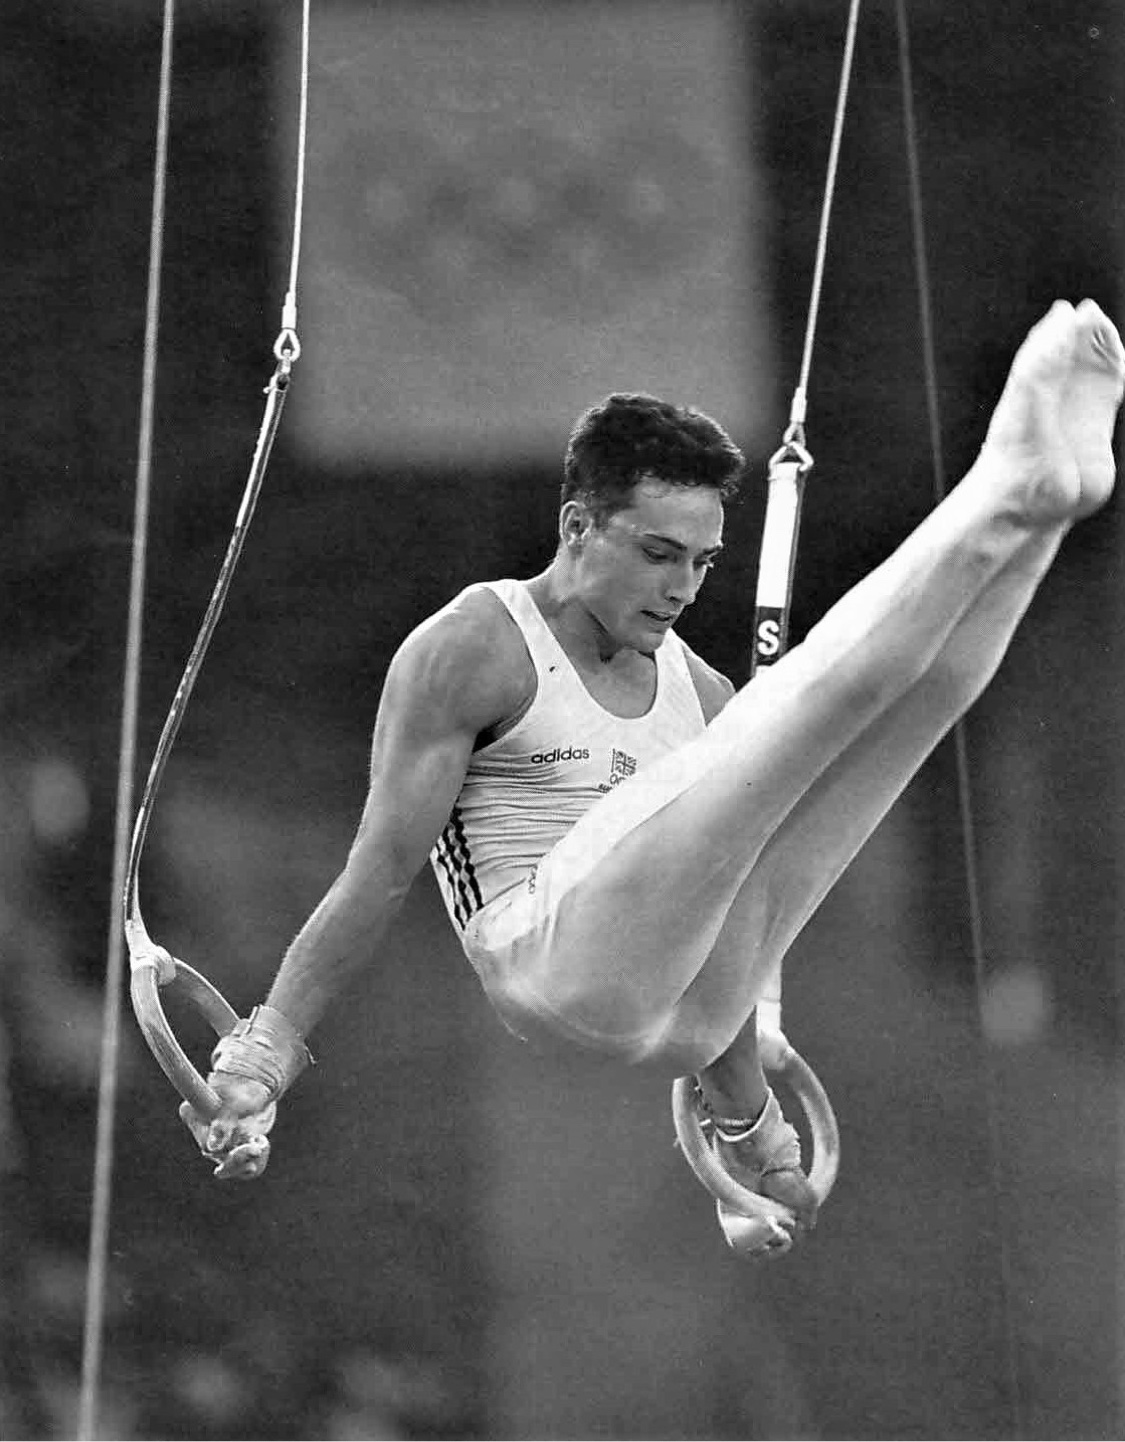 Neil Thomas competing for Great Britain on rings at the 1992 Barcelona Olympics